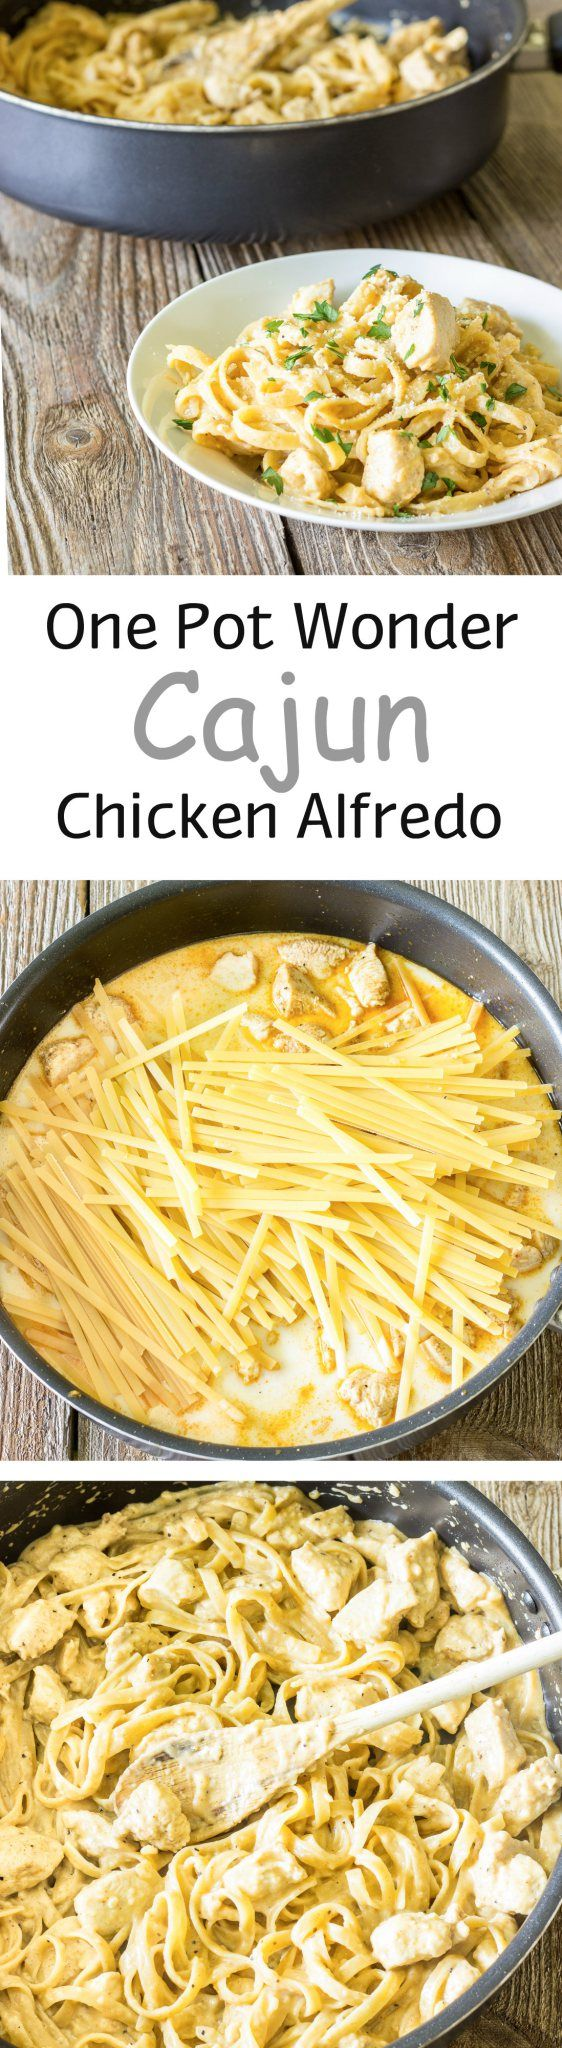 One Pot Wonder Cajun Chicken Alfredo - a healthier copycat of the popular Red Lobster #pasta dish